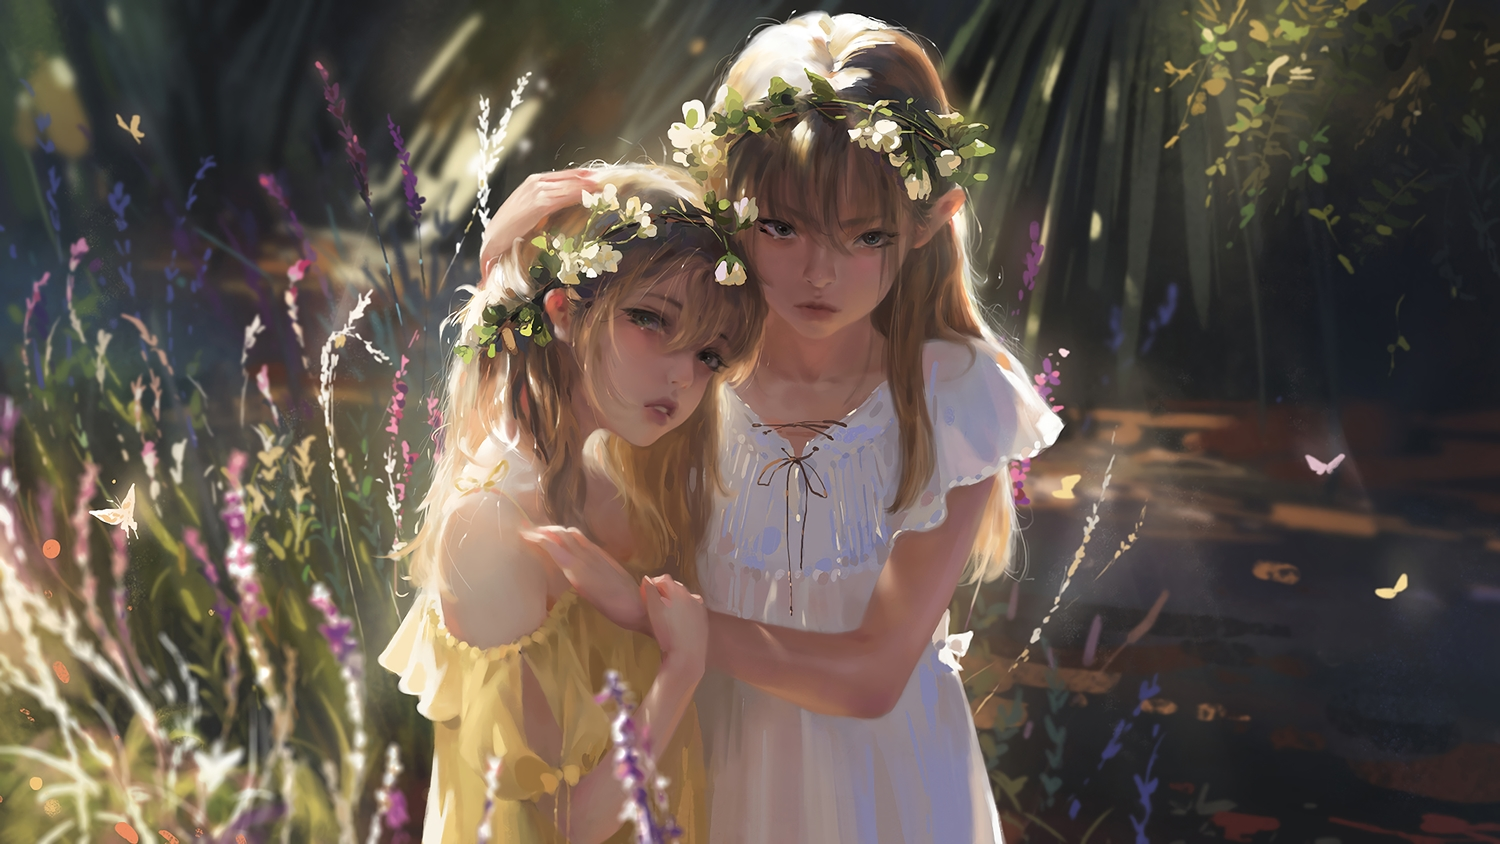 2girls blonde_hair blue_eyes butterfly dress flowers forest g-tz headdress hug loli long_hair original realistic summer_dress tree